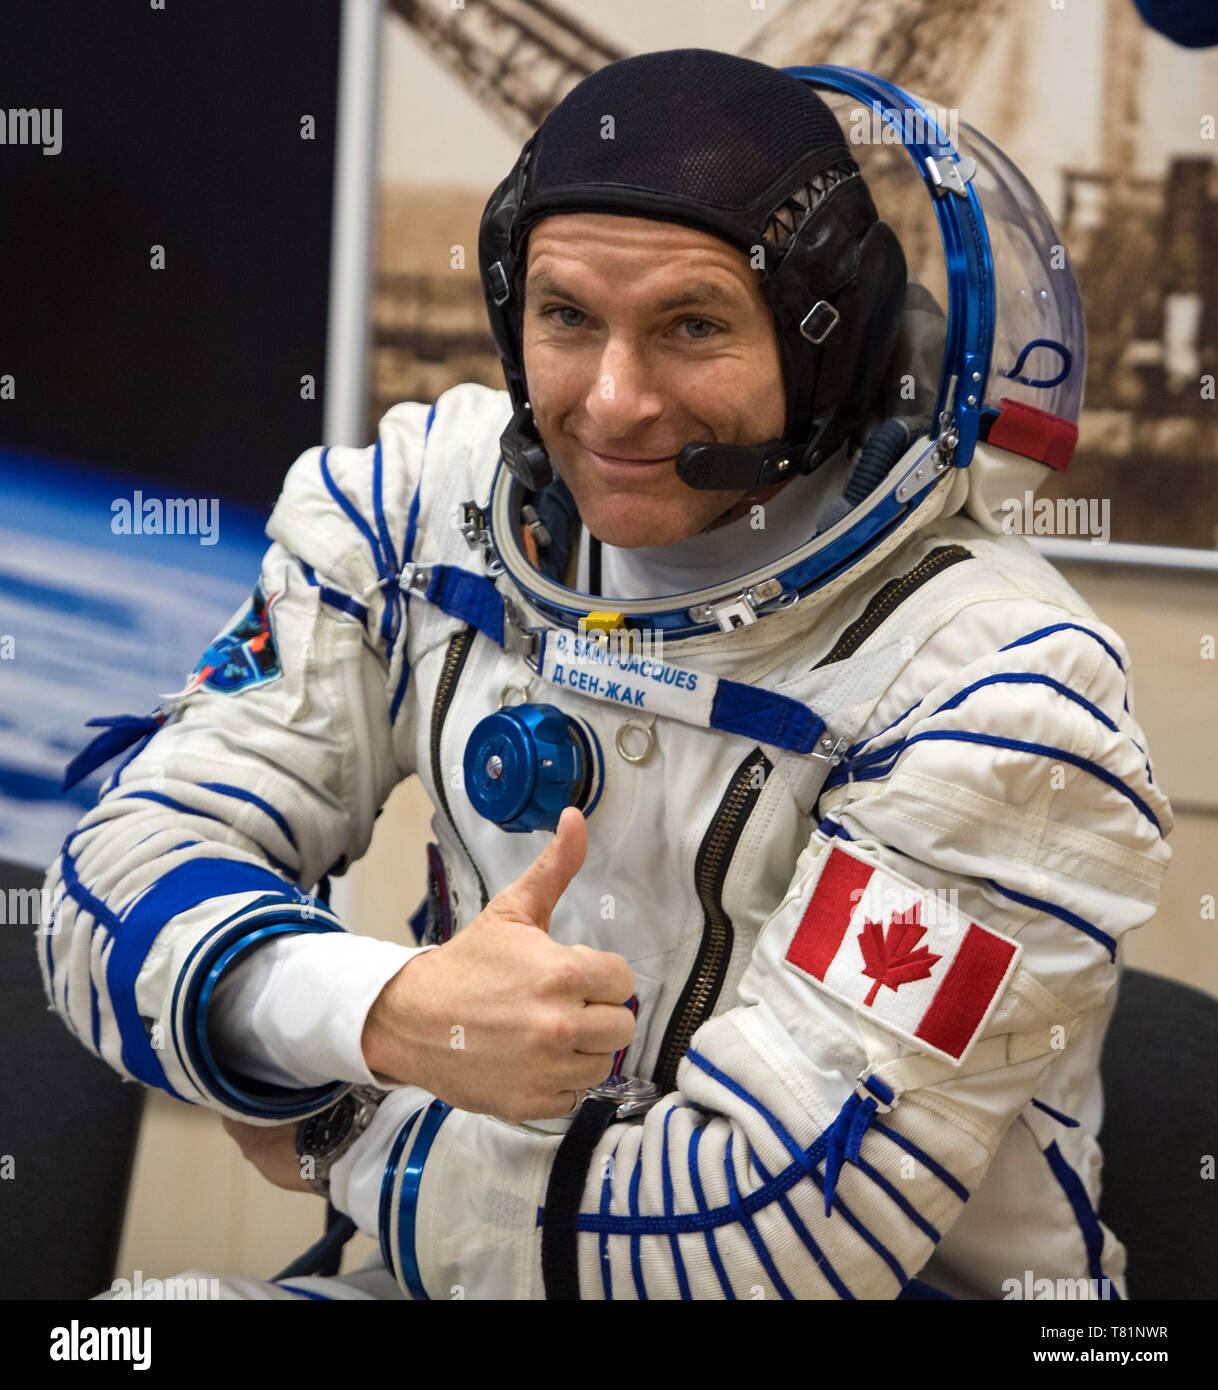 Astronaut David Saint-Jacques, ISS Expedition 58 - Stock Image